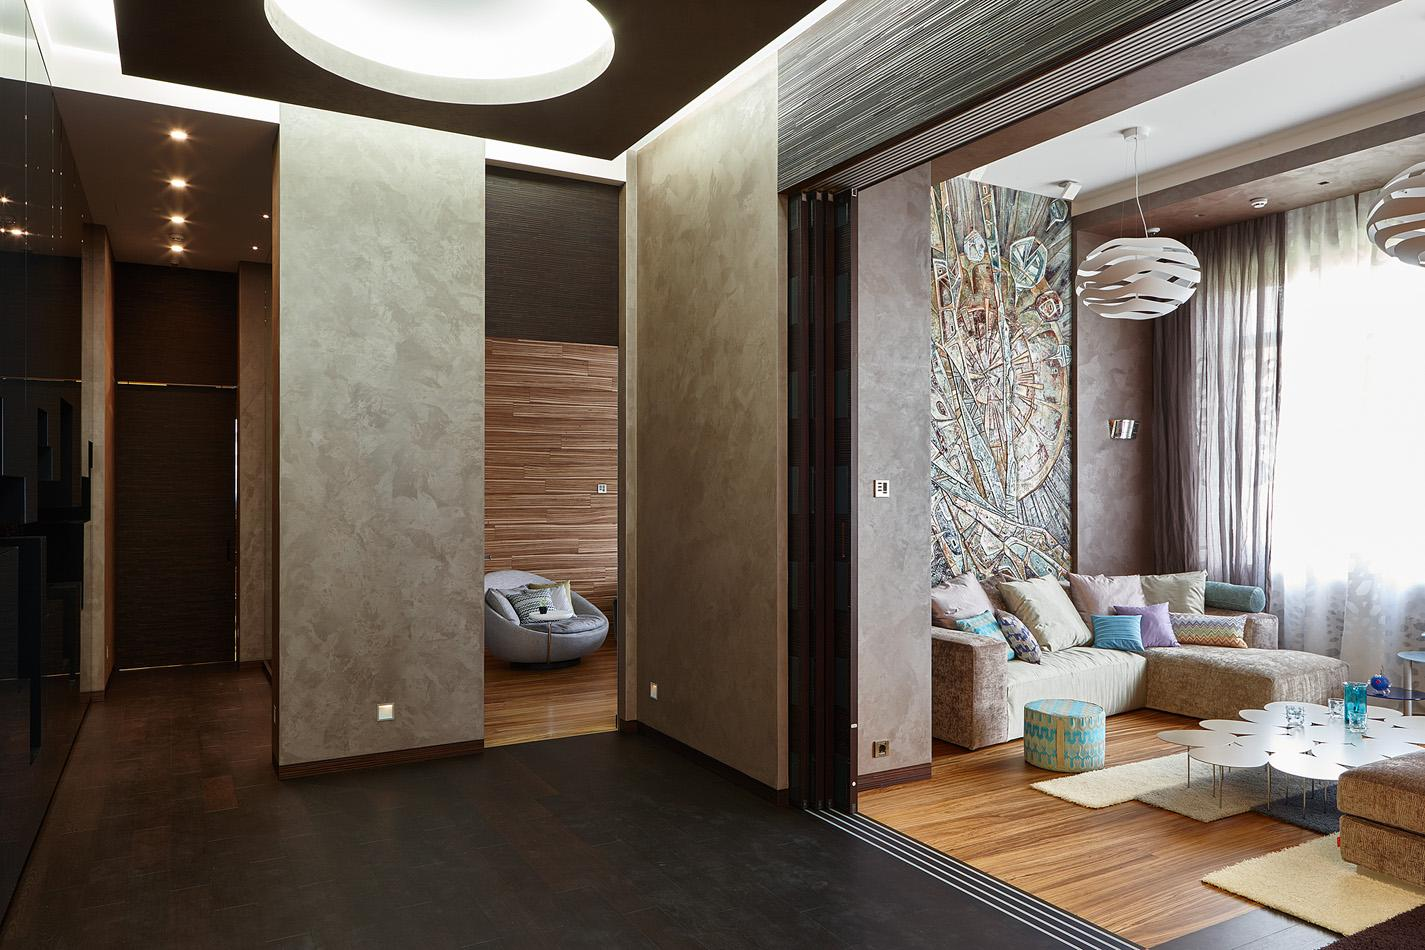 Luxury Private Villa Interior design, furnished with Laurameroni doors, wall panels and furniture in metal and wood